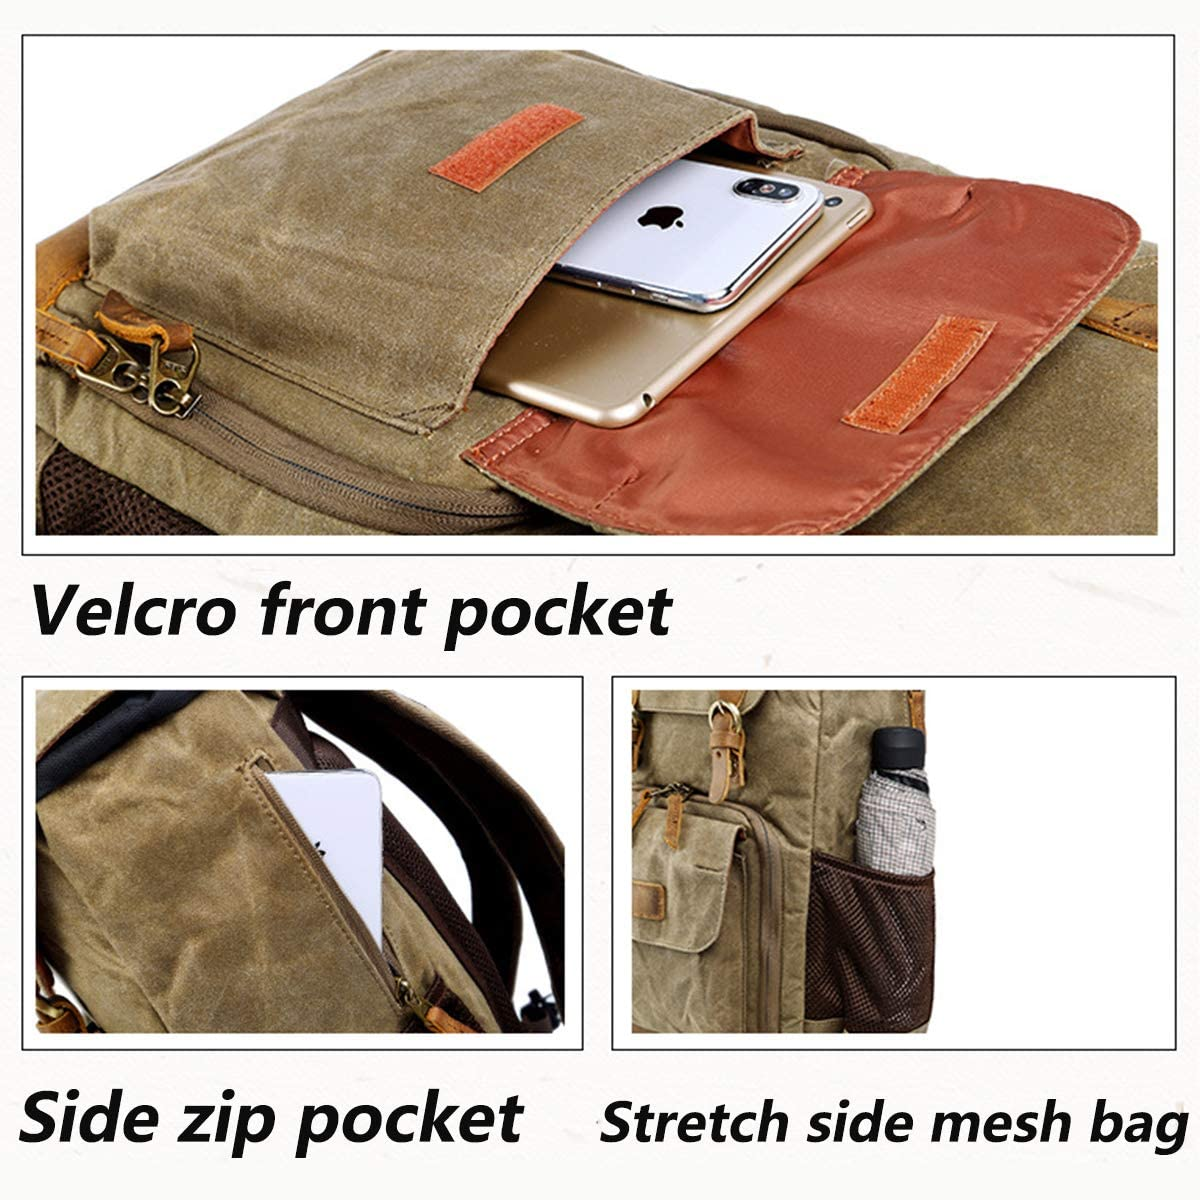 Side Quick Access Antitheft Waterproof Camera Bag for Photographersmirrorless Tripod Accessoriesr Khaki OLDFAI DSLR Camera Backpack Bag with Laptop Compartment 15 Mirrorless Camera